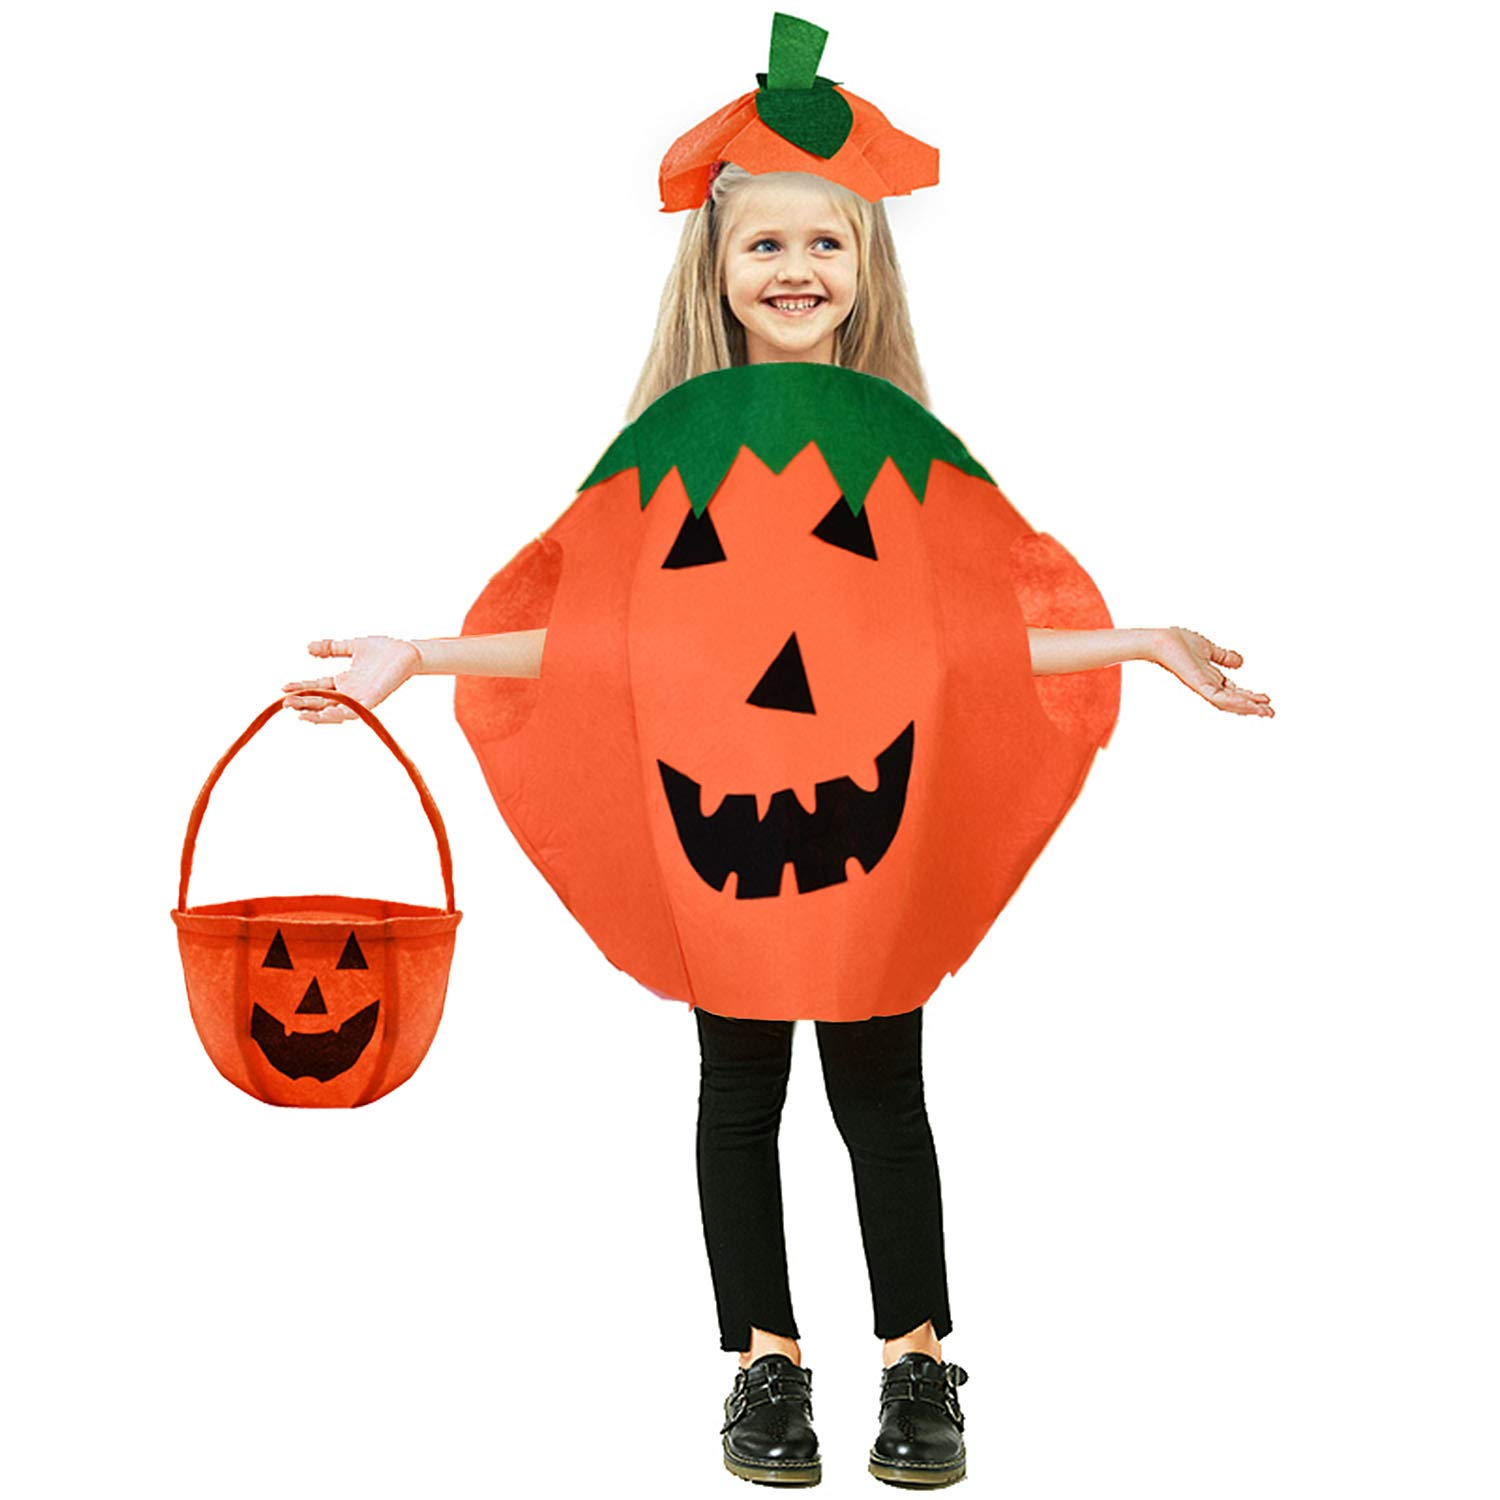 TiiMi Party Halloween Pumpkin Costume Set for Kids Pumpkin Candy Bag Children Cosplay Party Clothes for Halloween Party